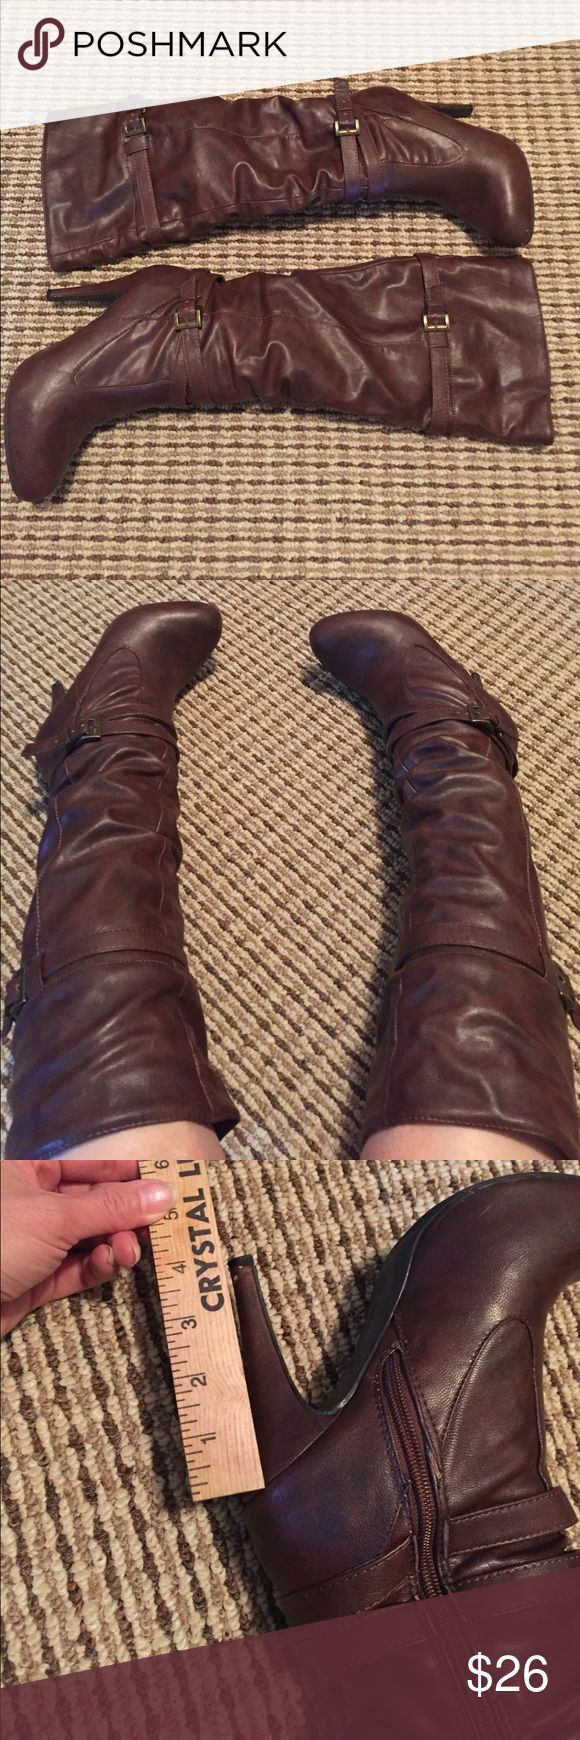 Tall brown boots Only worn a few times. Soft fuzzy lining. Ann Michell Shoes Heeled Boots